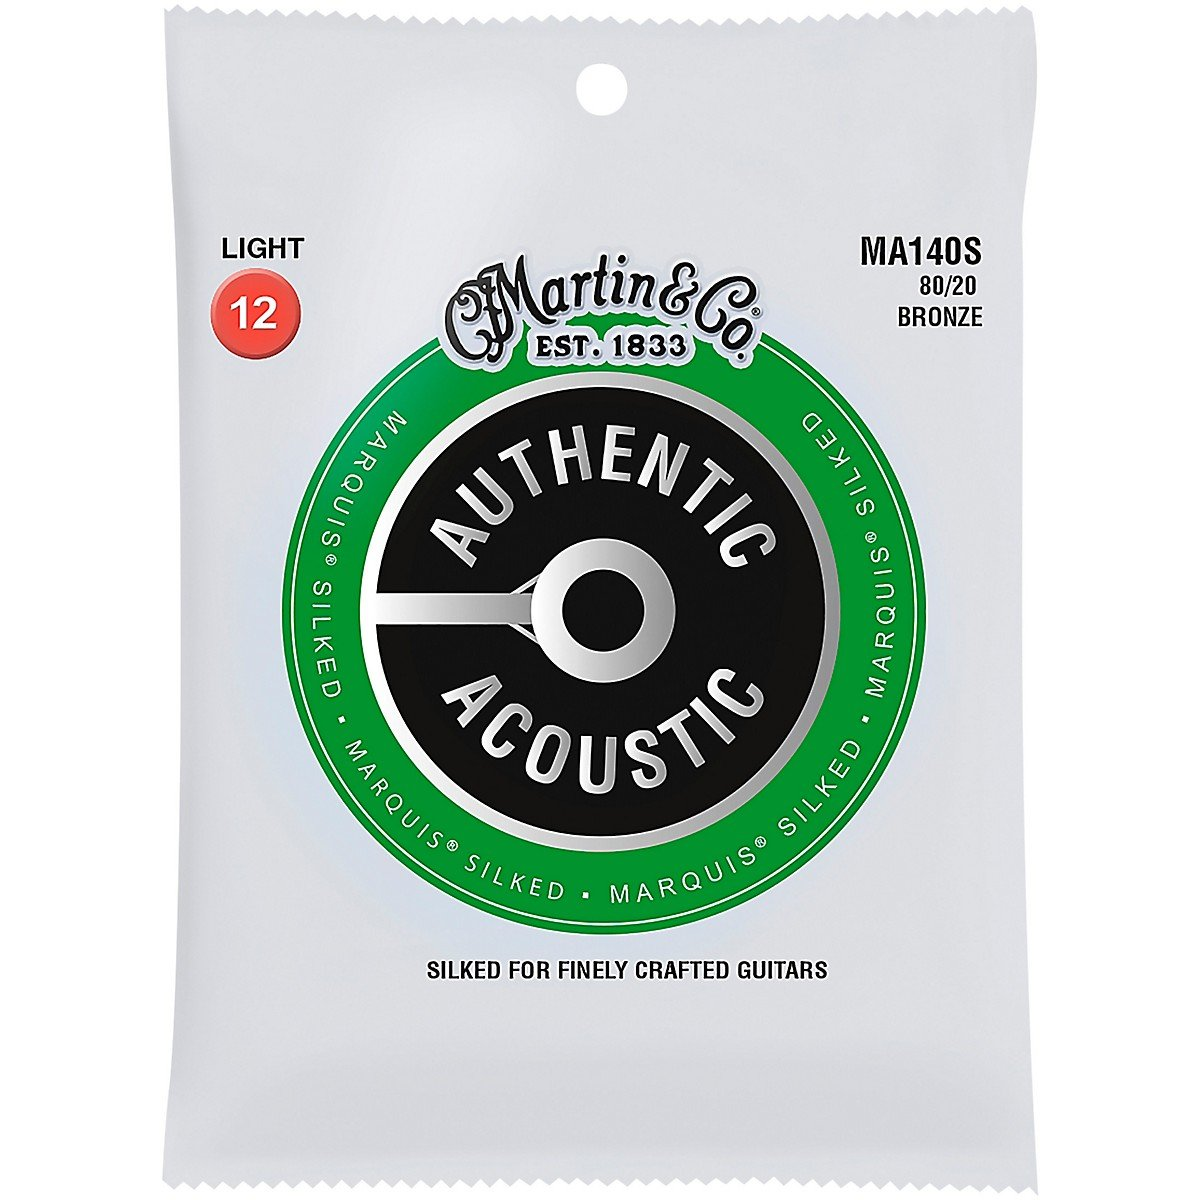 Martin MA140S Marquis Silked 80/20 Bronze Authentic Acoustic Guitar Strings, Light 12-54